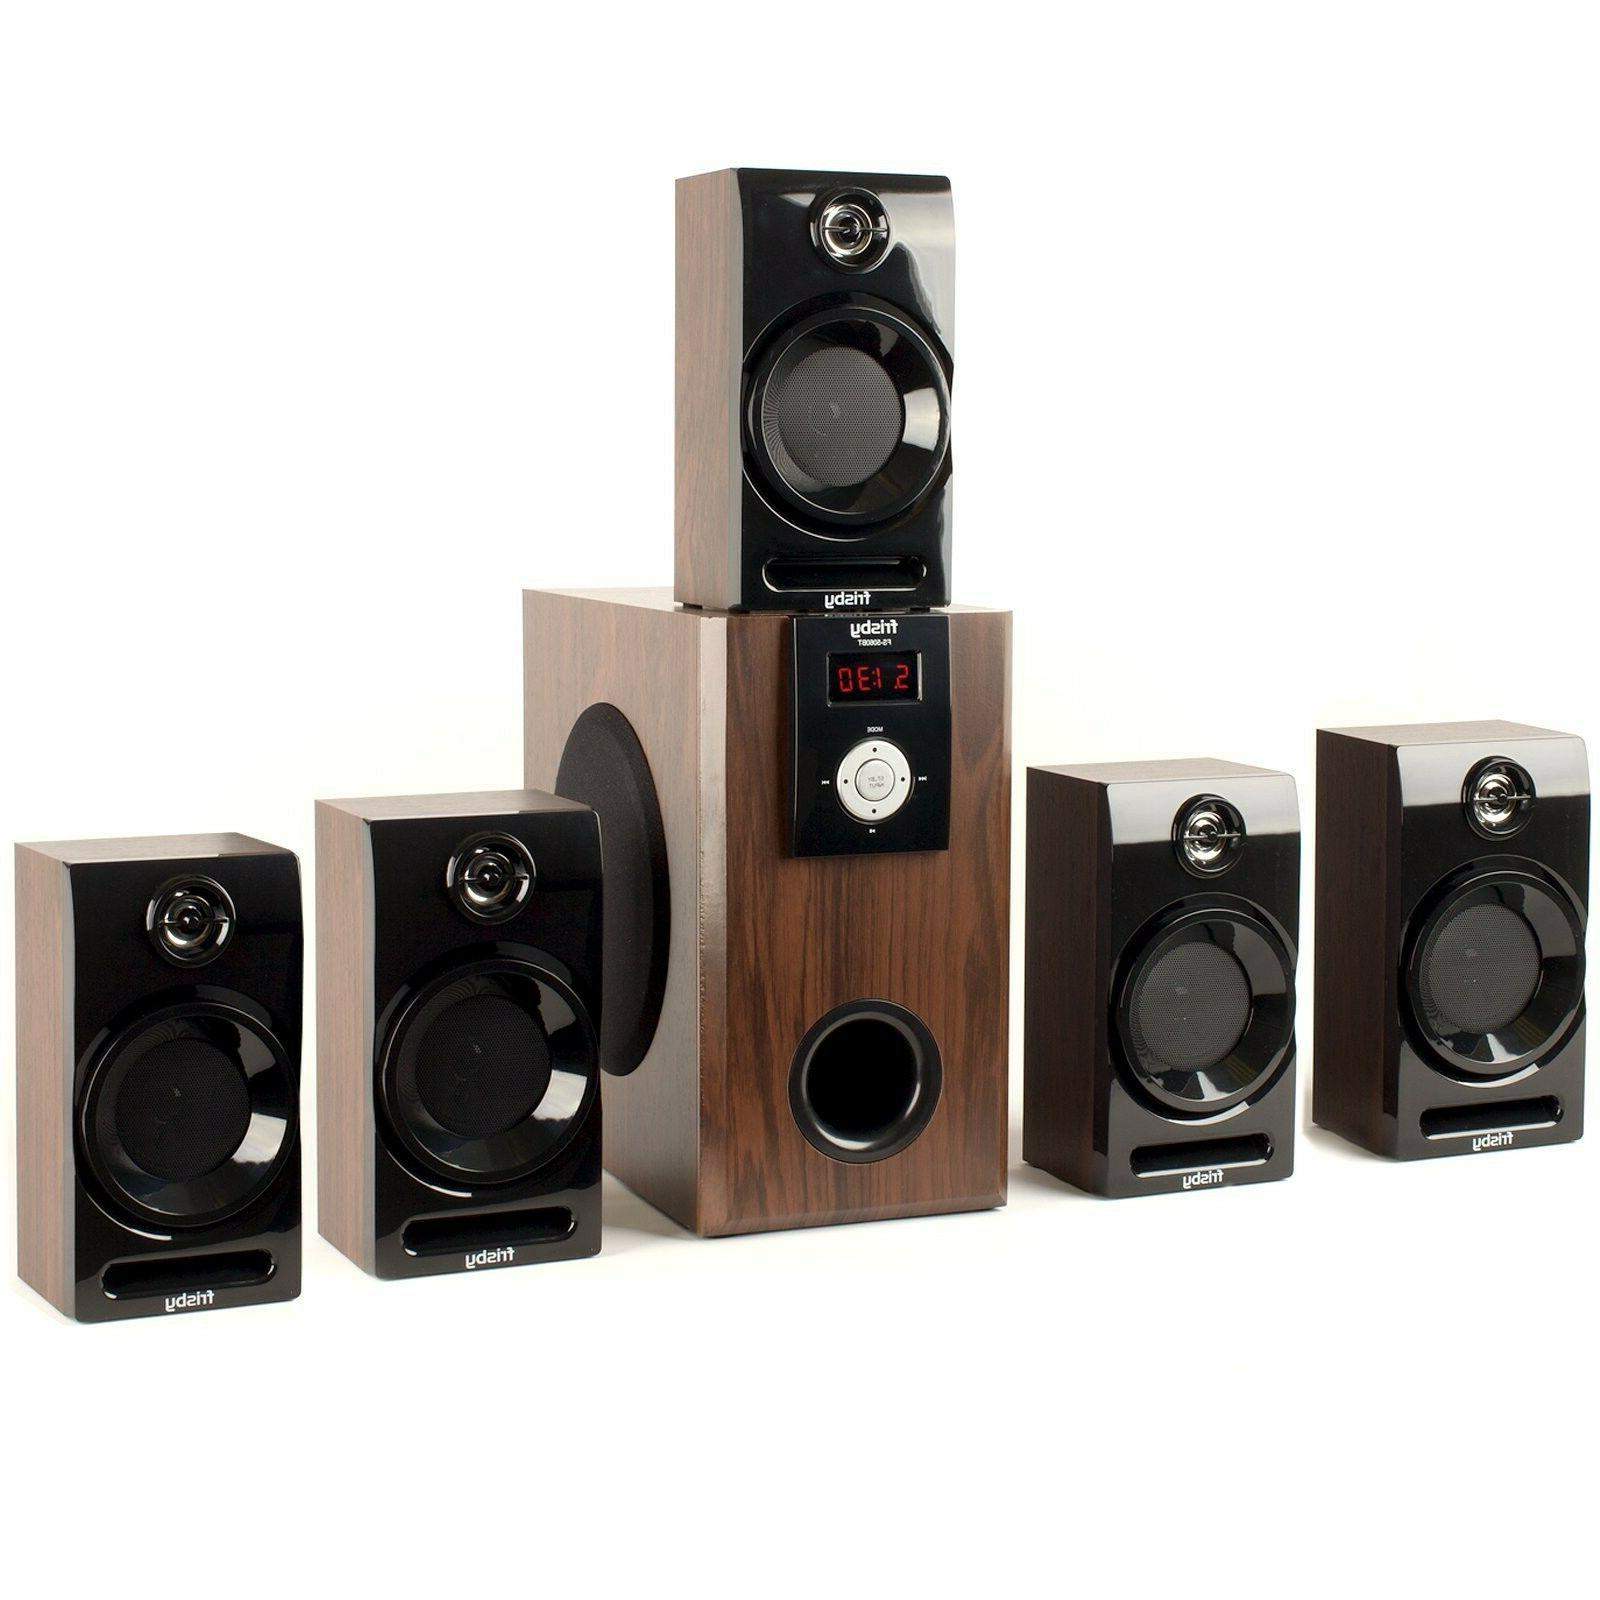 Frisby 5.1 Surround Sound Speakers System with USB/SD and Remote